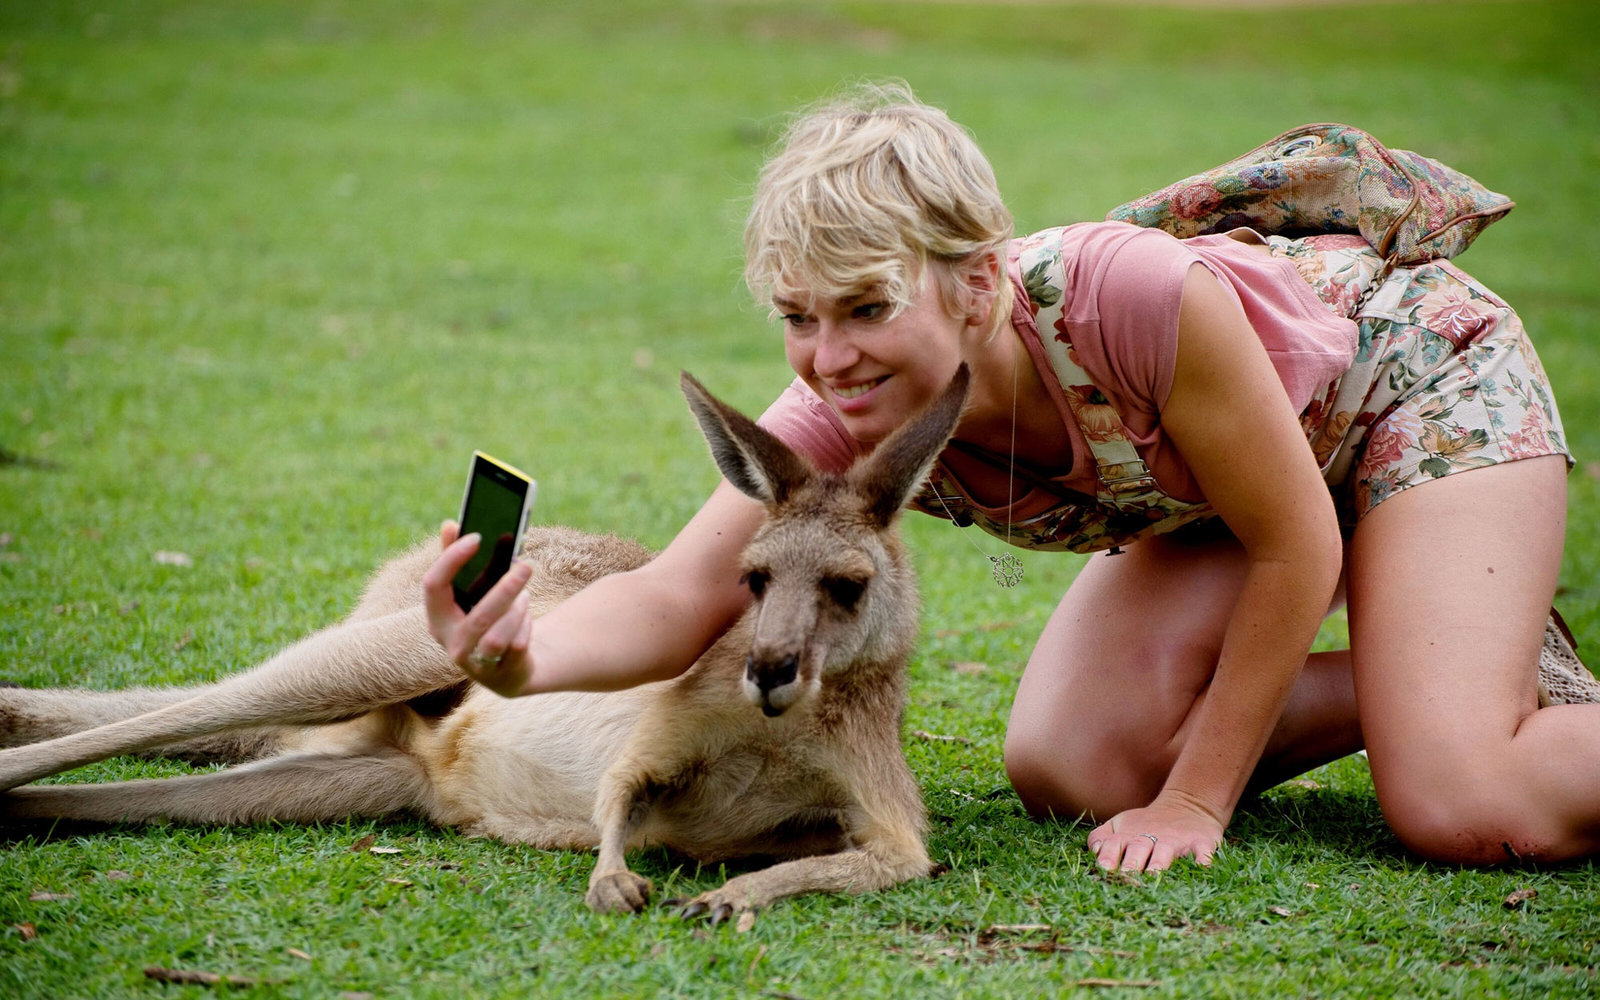 We're Begging You: Stop Taking Selfies With Wild Animals